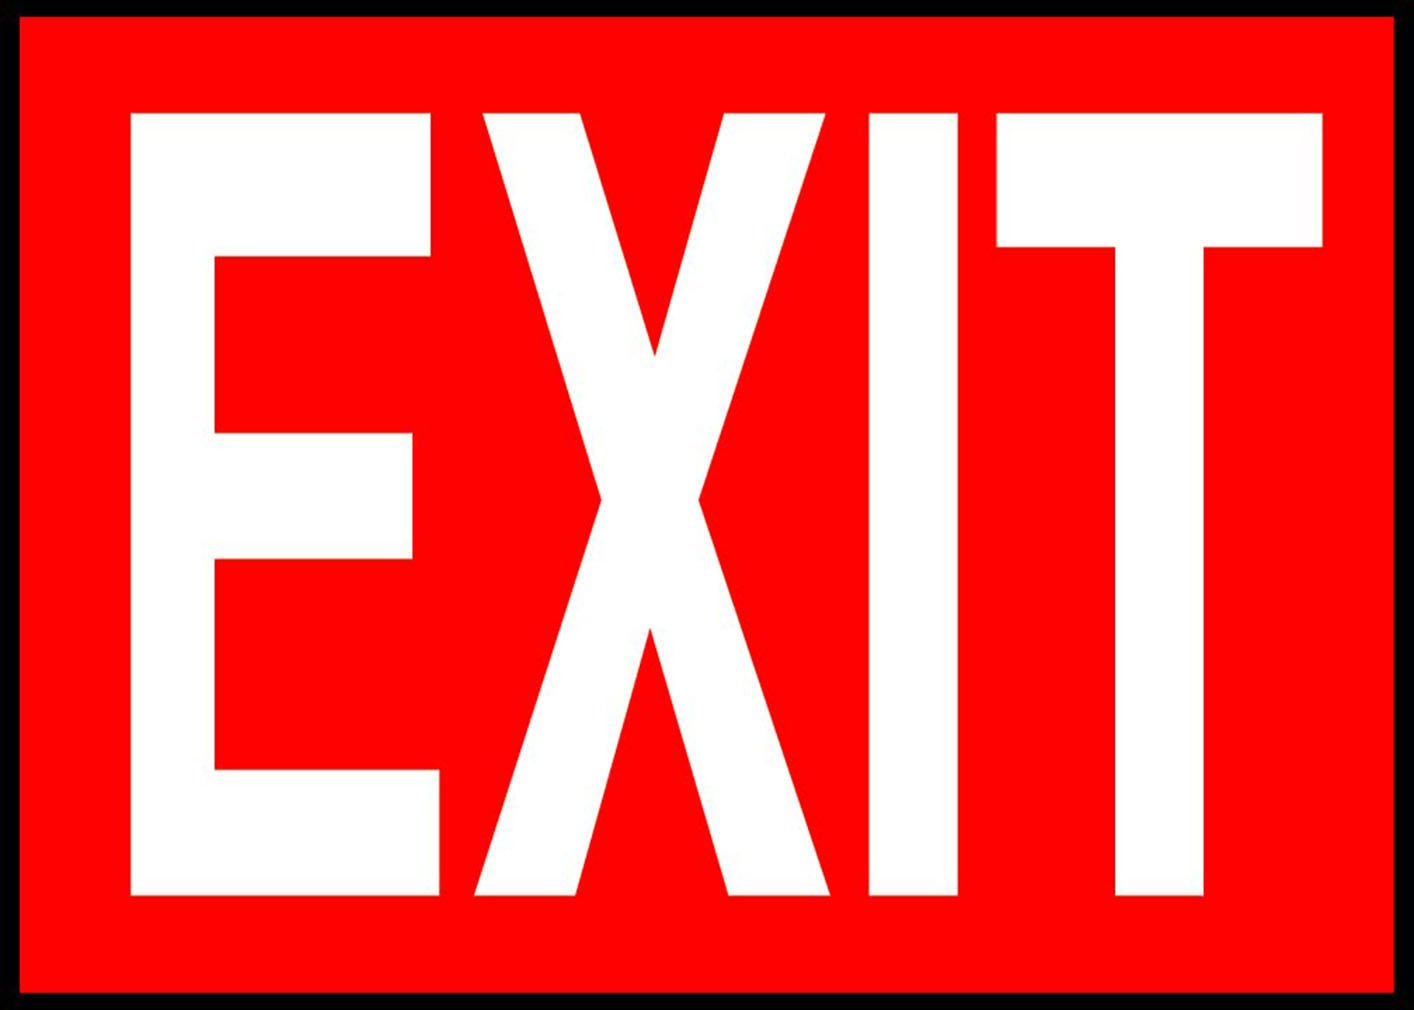 Exit (Red Background​) Emergency Exit OSHA / ANSI LABEL DECAL STICKER Sticks to Any Surface 10x7